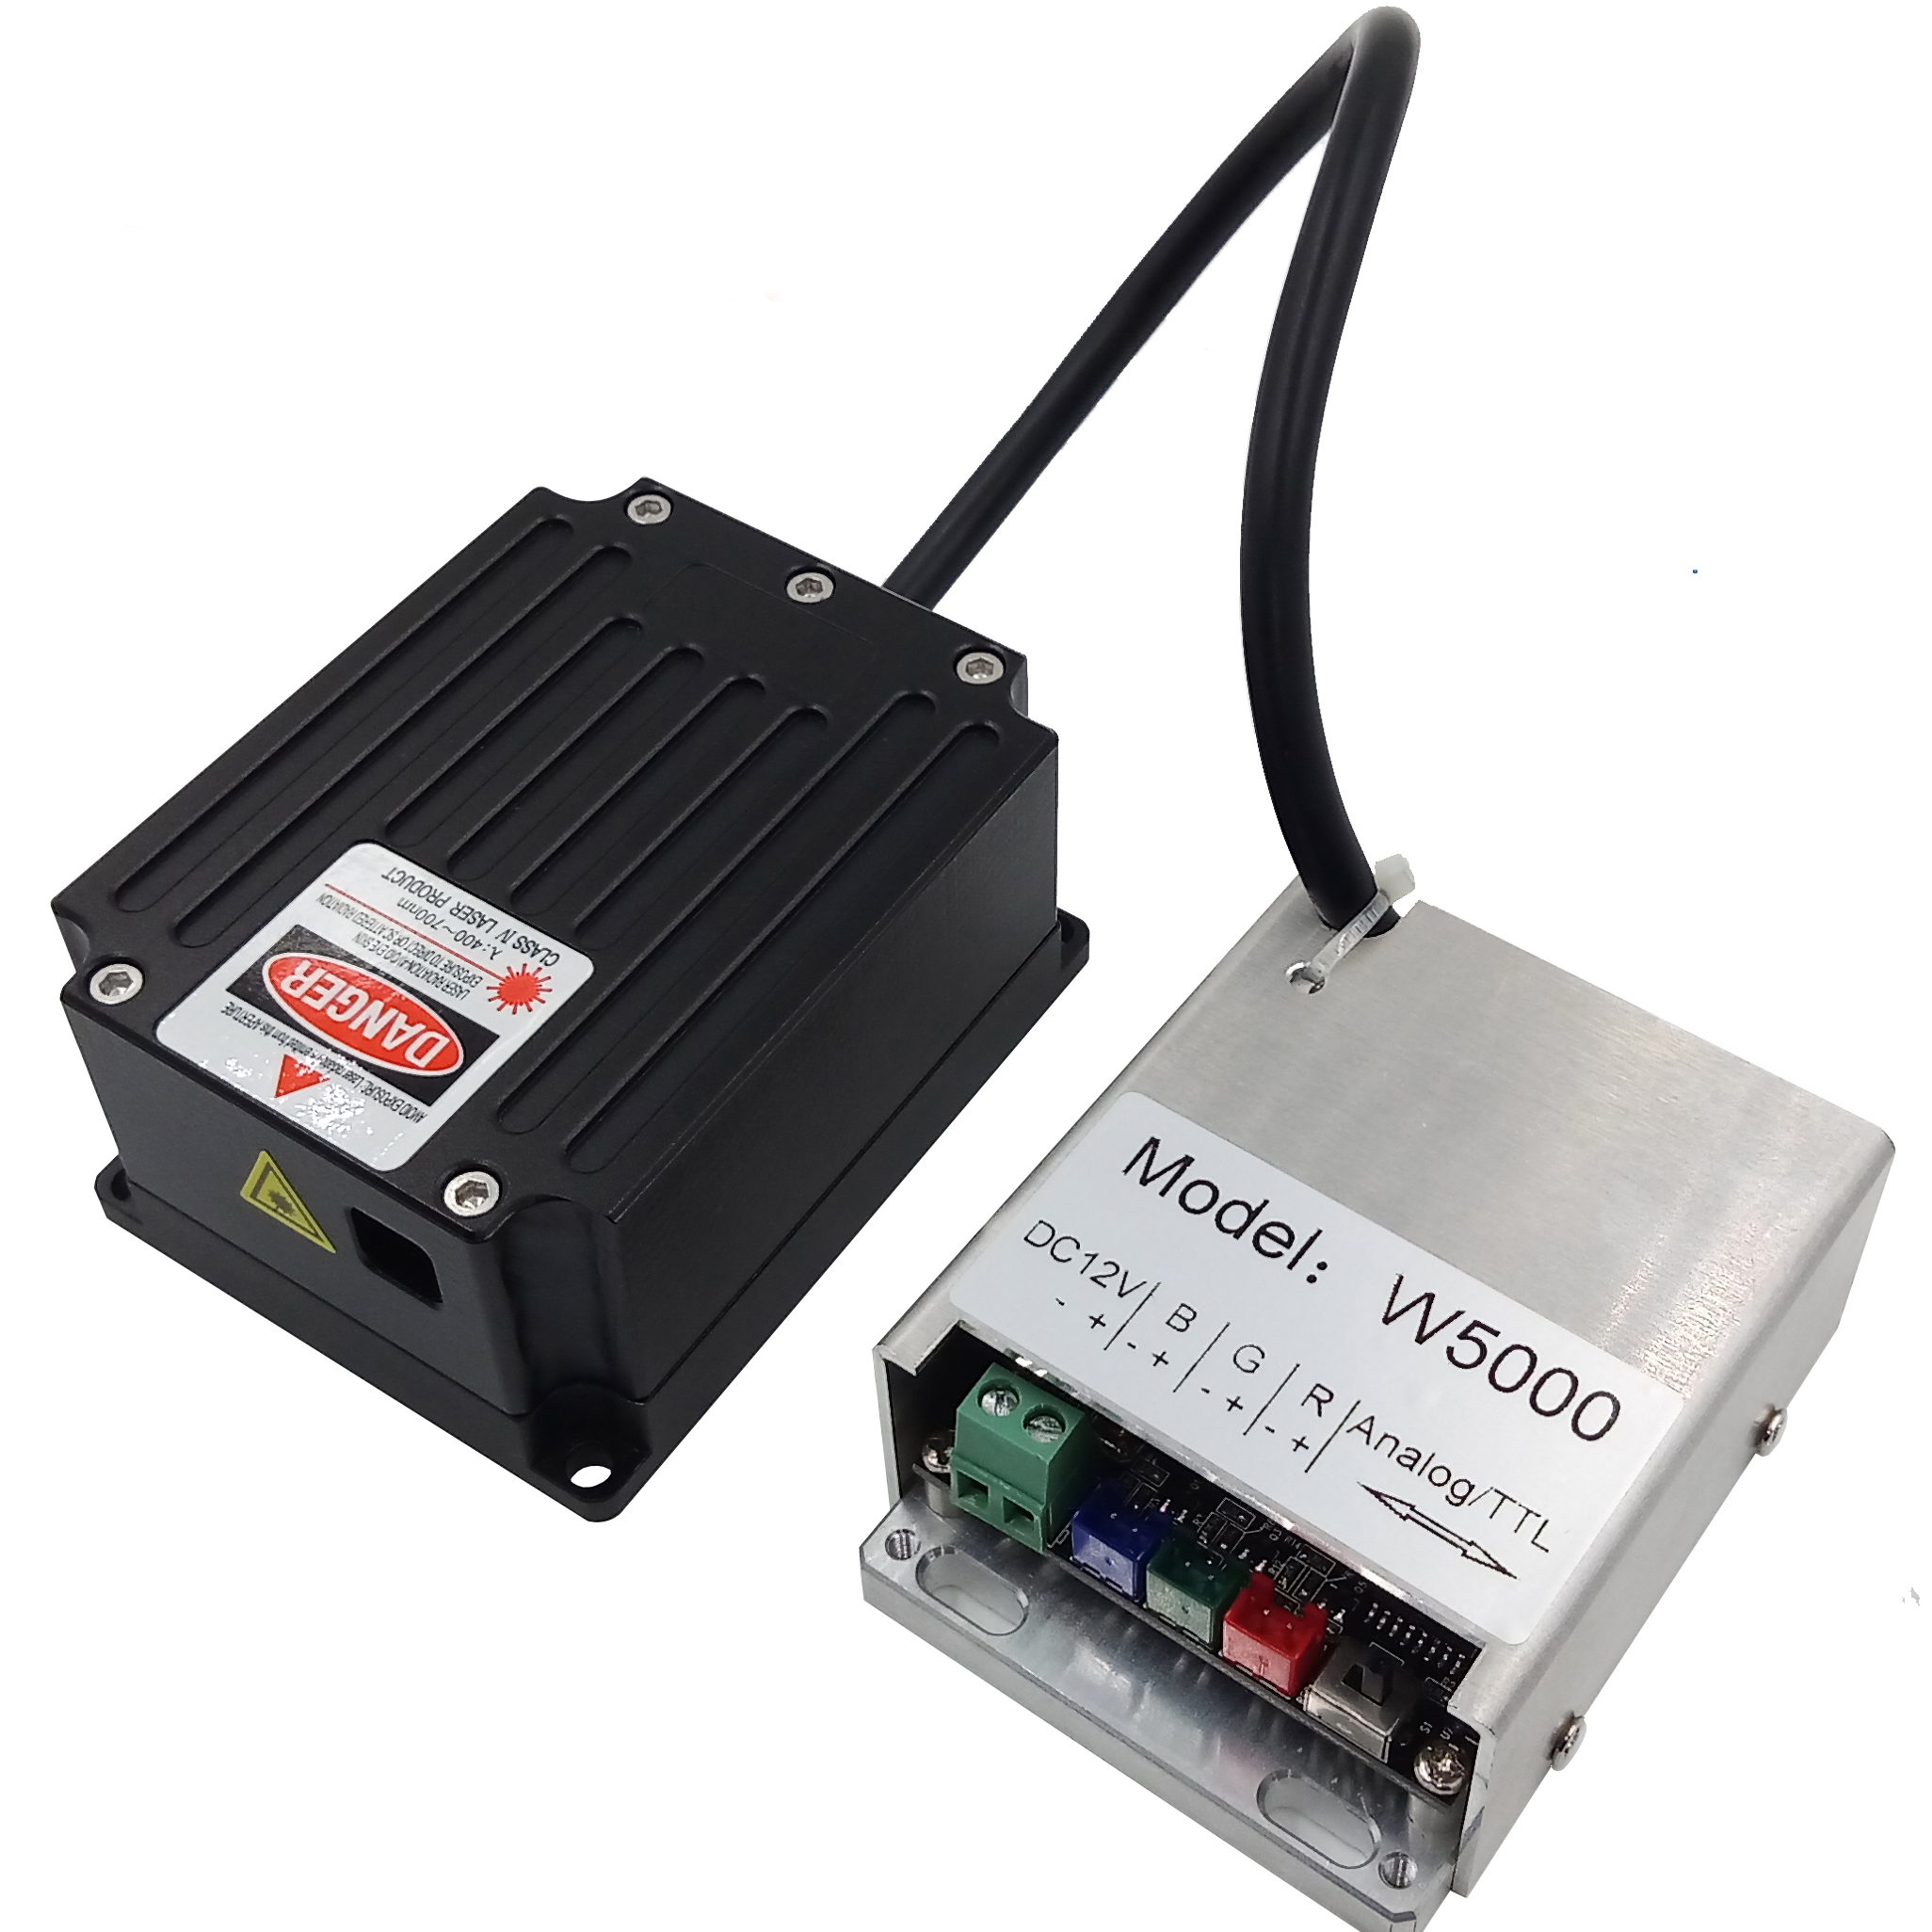 <font><b>5W</b></font> 5000mW RGB <font><b>diode</b></font> <font><b>laser</b></font> module by TTL and Analog Modulation for DMX or ILDA DJ stage light projector production image